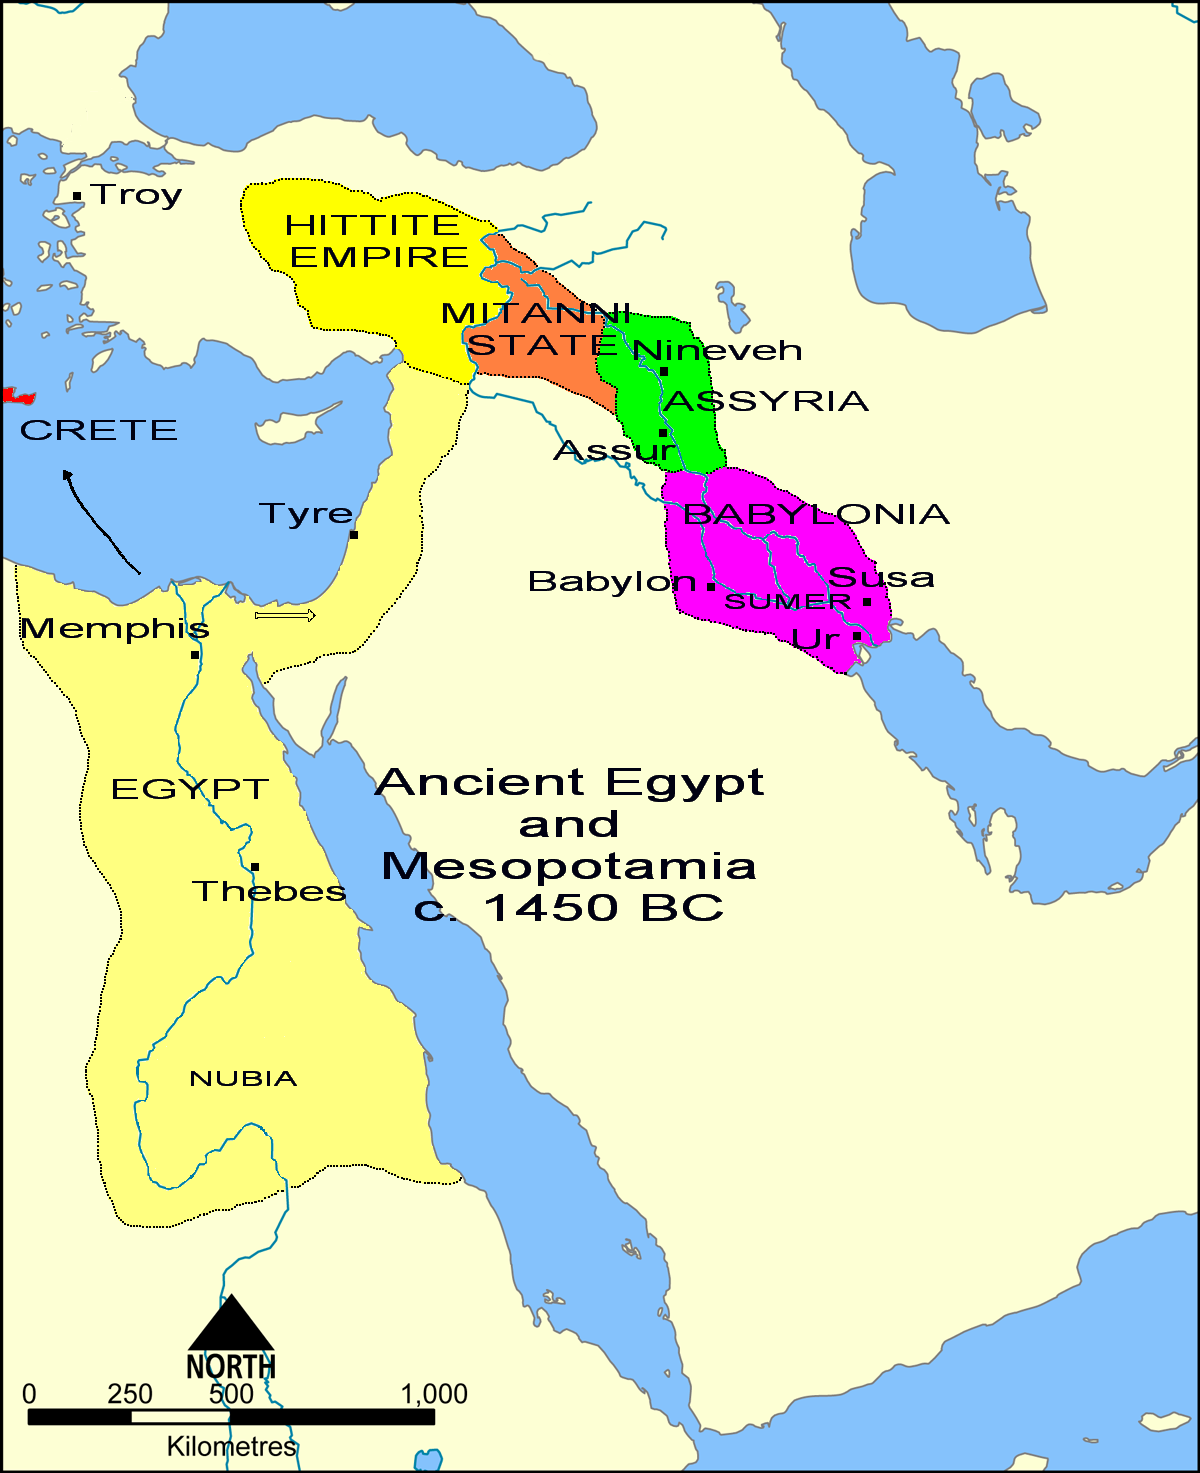 Assyria Wikipedia - Where is egypt